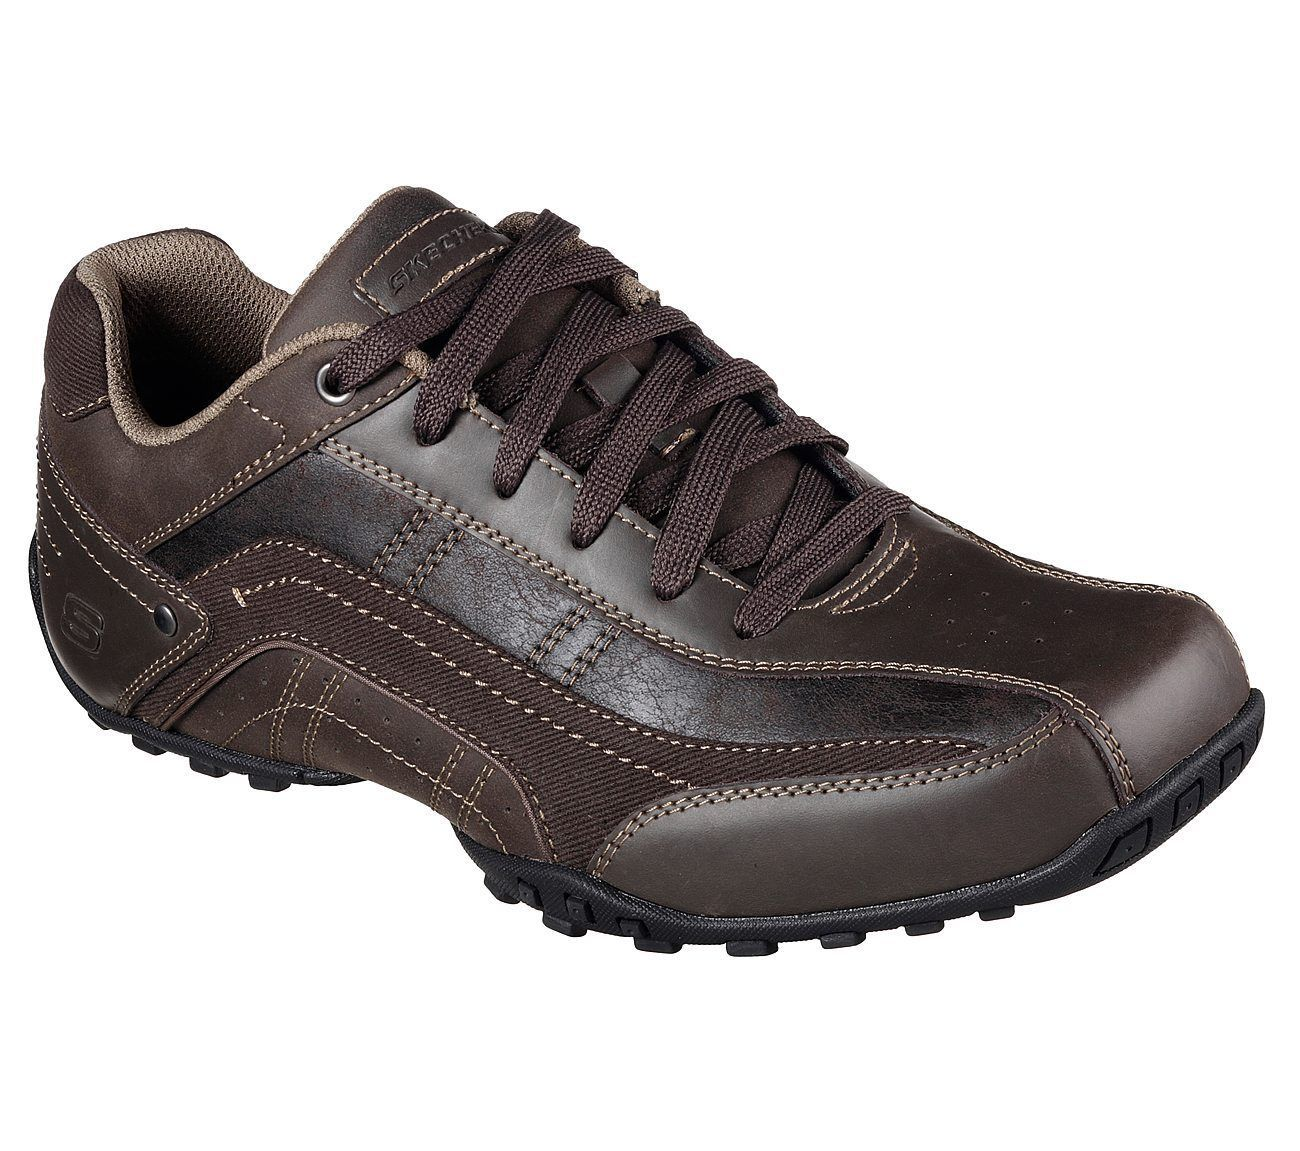 Men's Skechers Citywalk - Elendo Casual Shoes, 64932 /CHOC Sizes 8-14 Chocolate